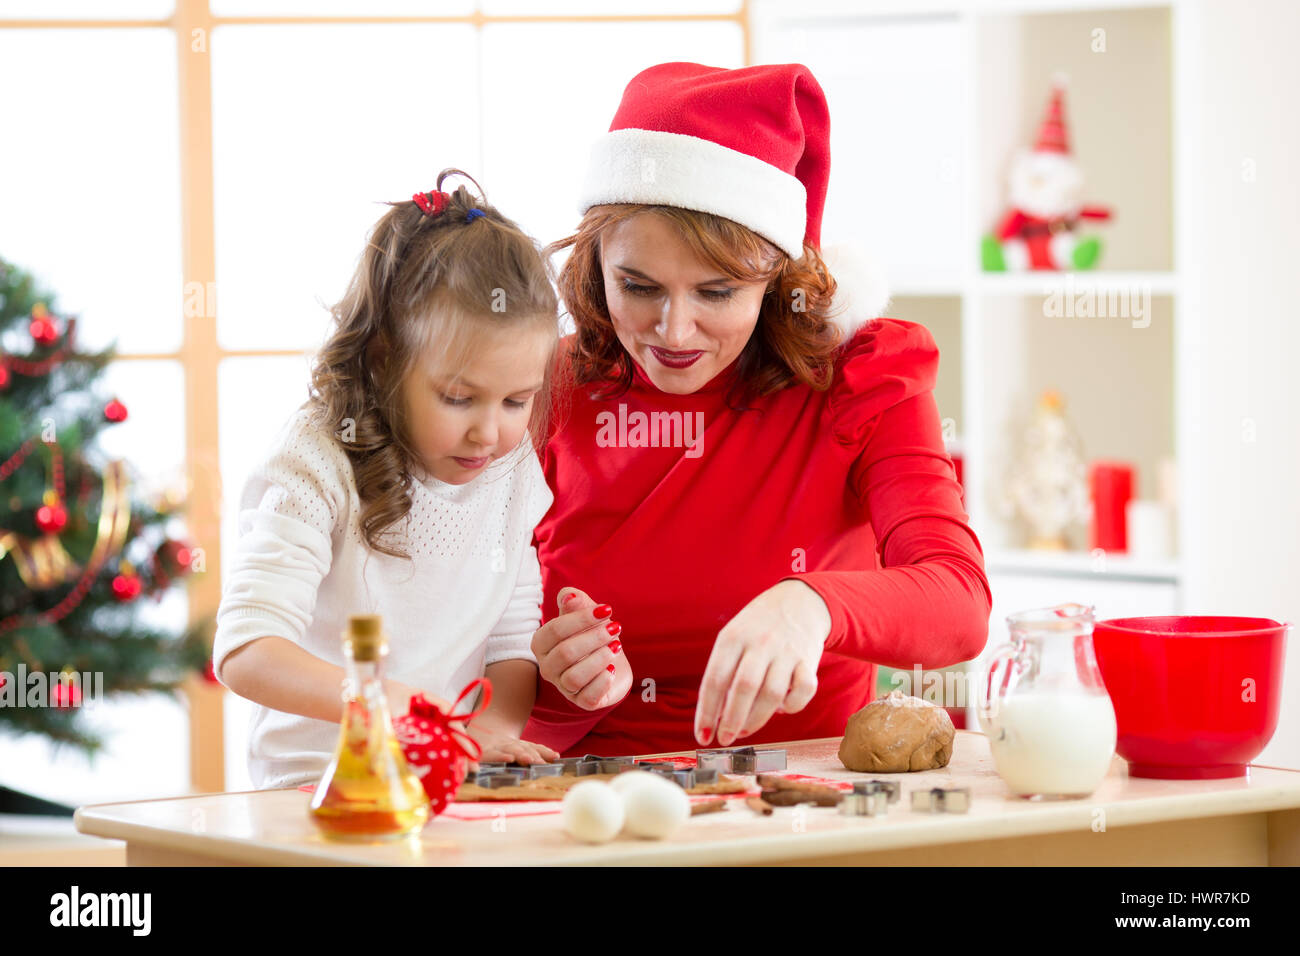 Happy kid girl and mother baking x-mas cookies together at festive decorated room - Stock Image